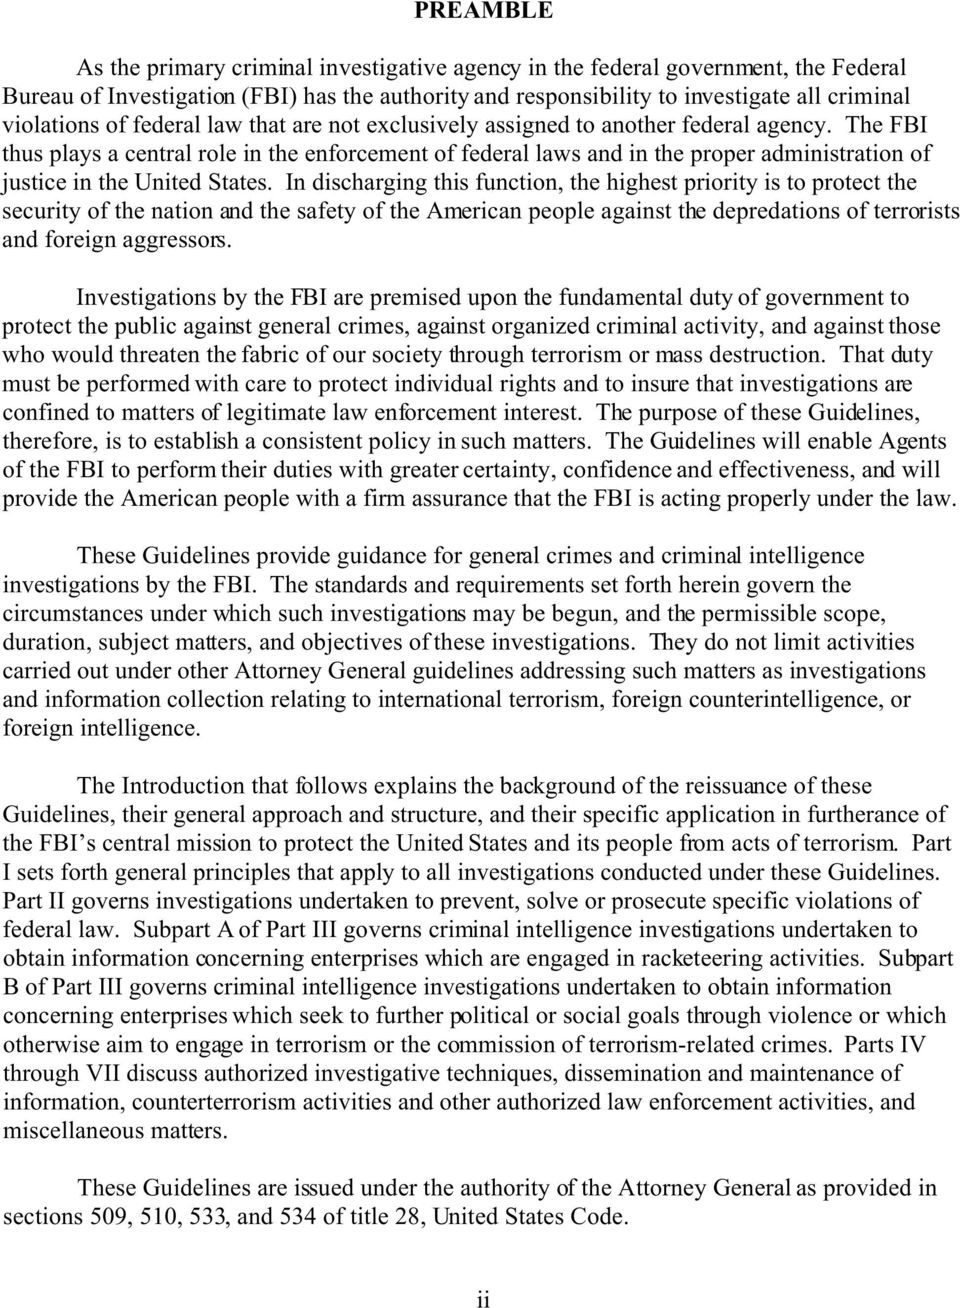 The FBI thus plays a central role in the enforcement of federal laws and in the proper administration of justice in the United States.